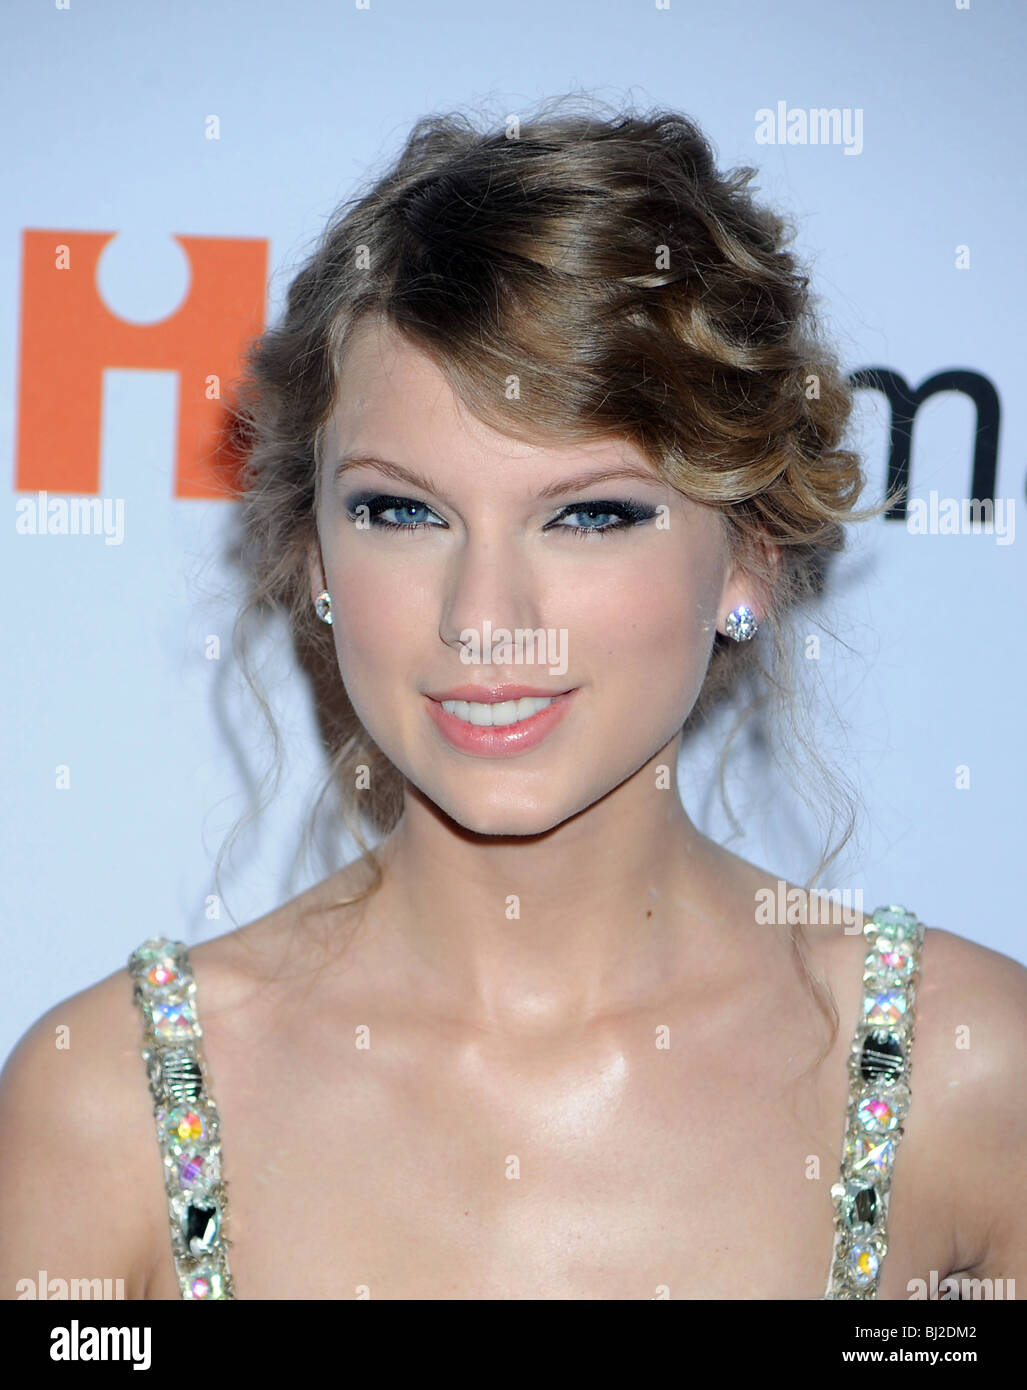 TAYLOR SWIFT - US singer and  actress in January 2010 - Stock Image